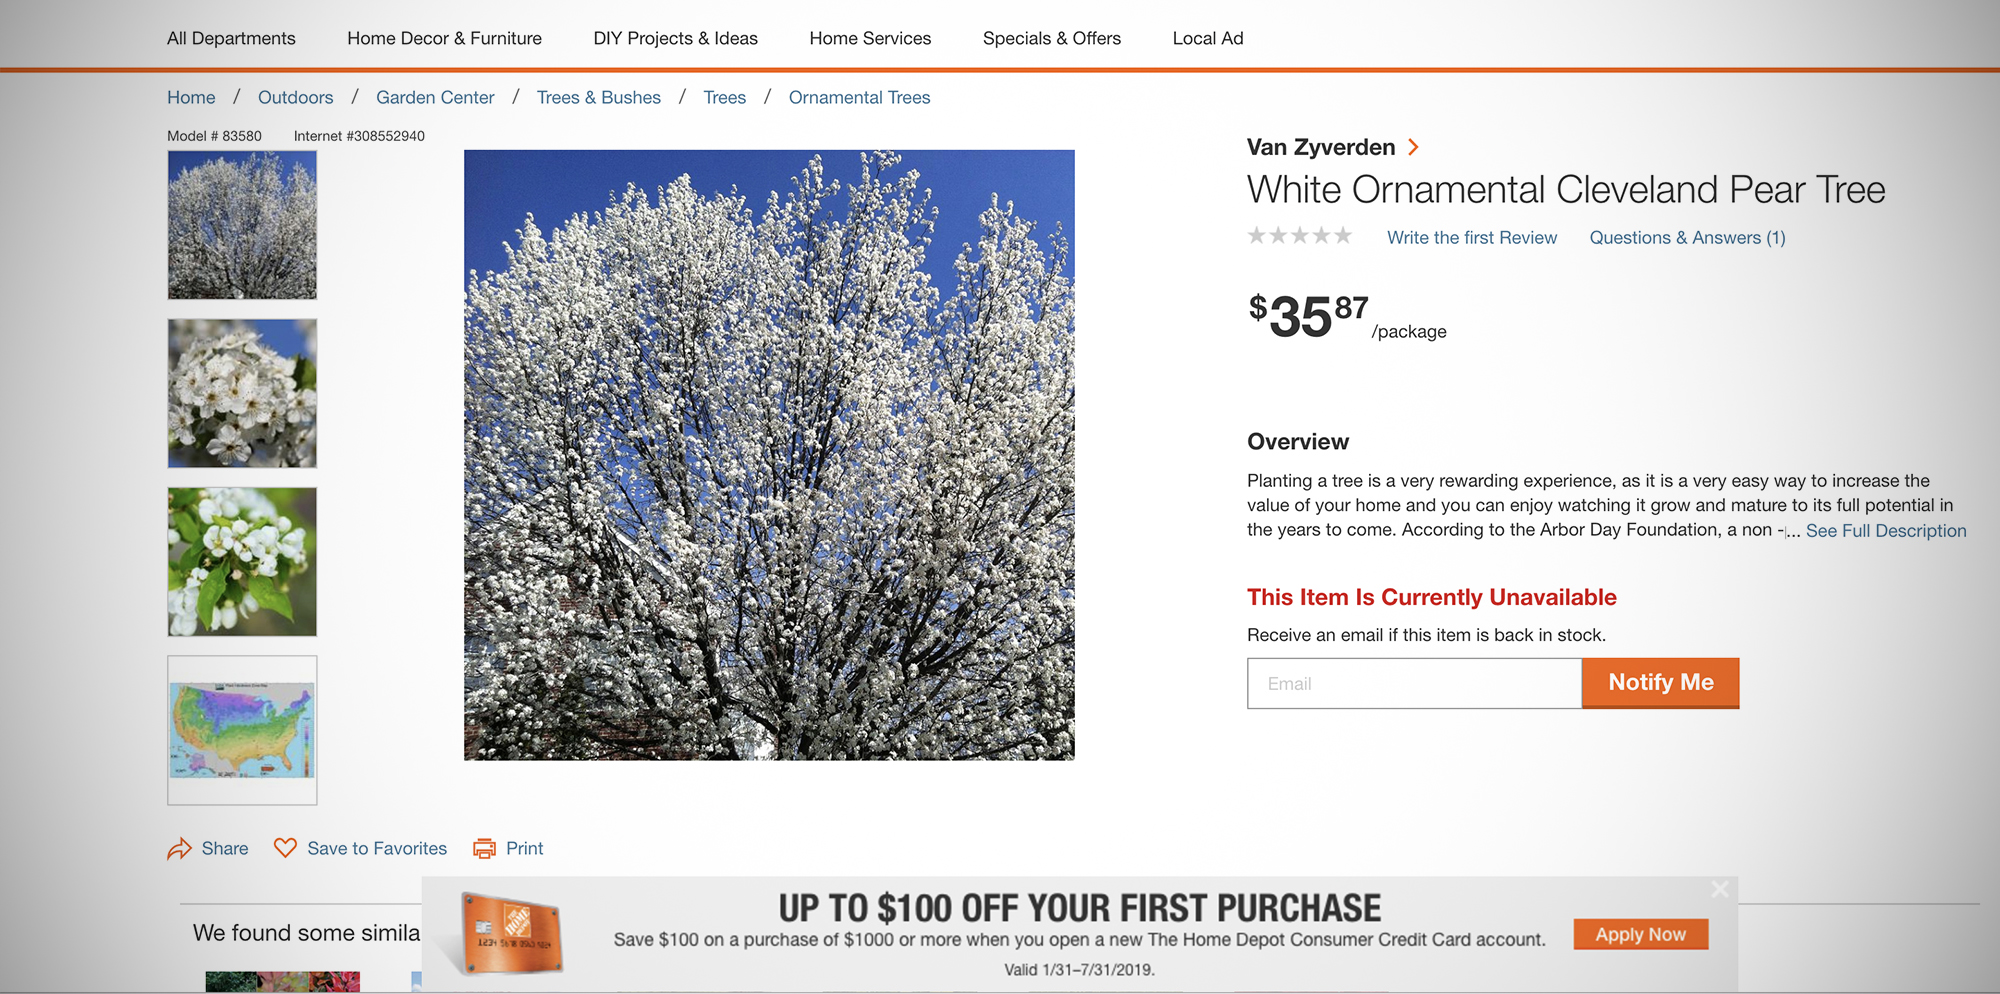 This is a screenshot of a Cleveland select tree sold on Home Depot's website.